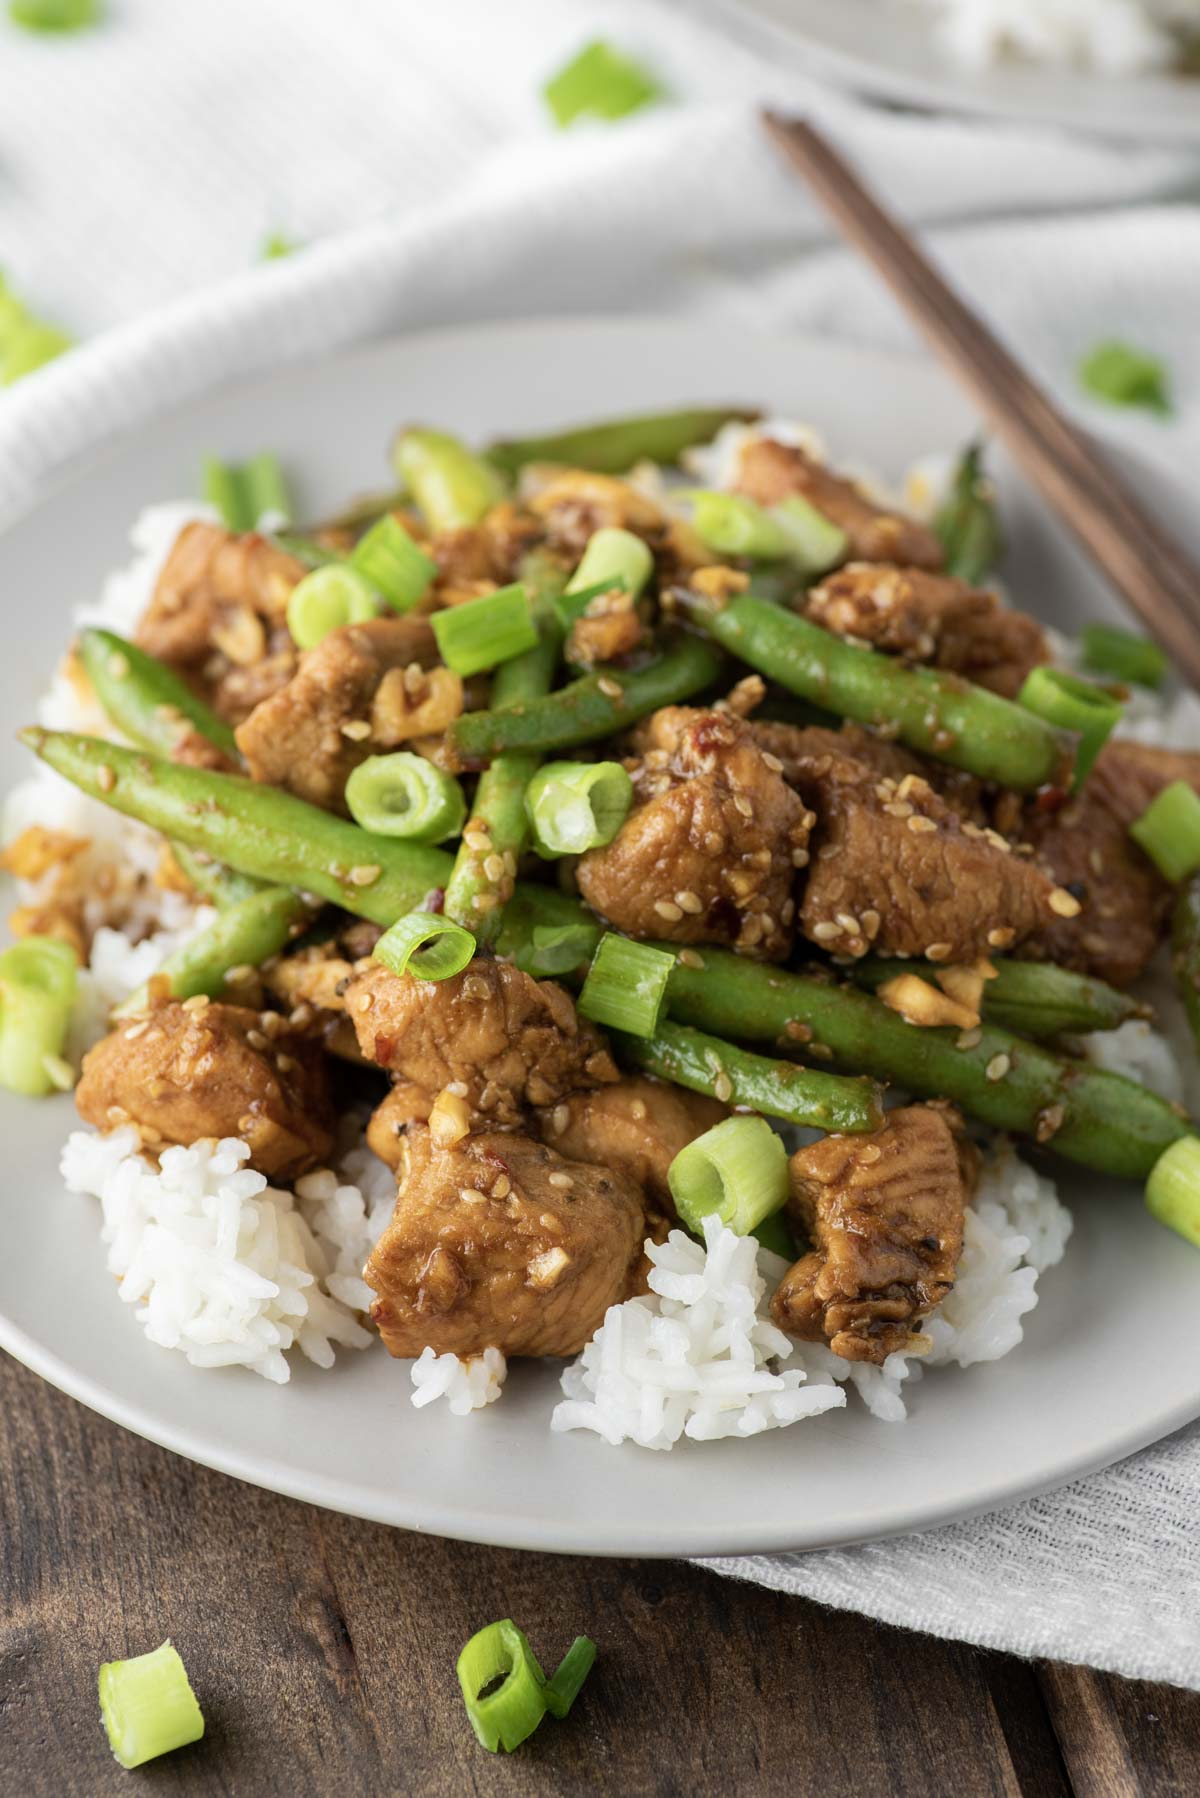 chicken and green bean stir fry on plate